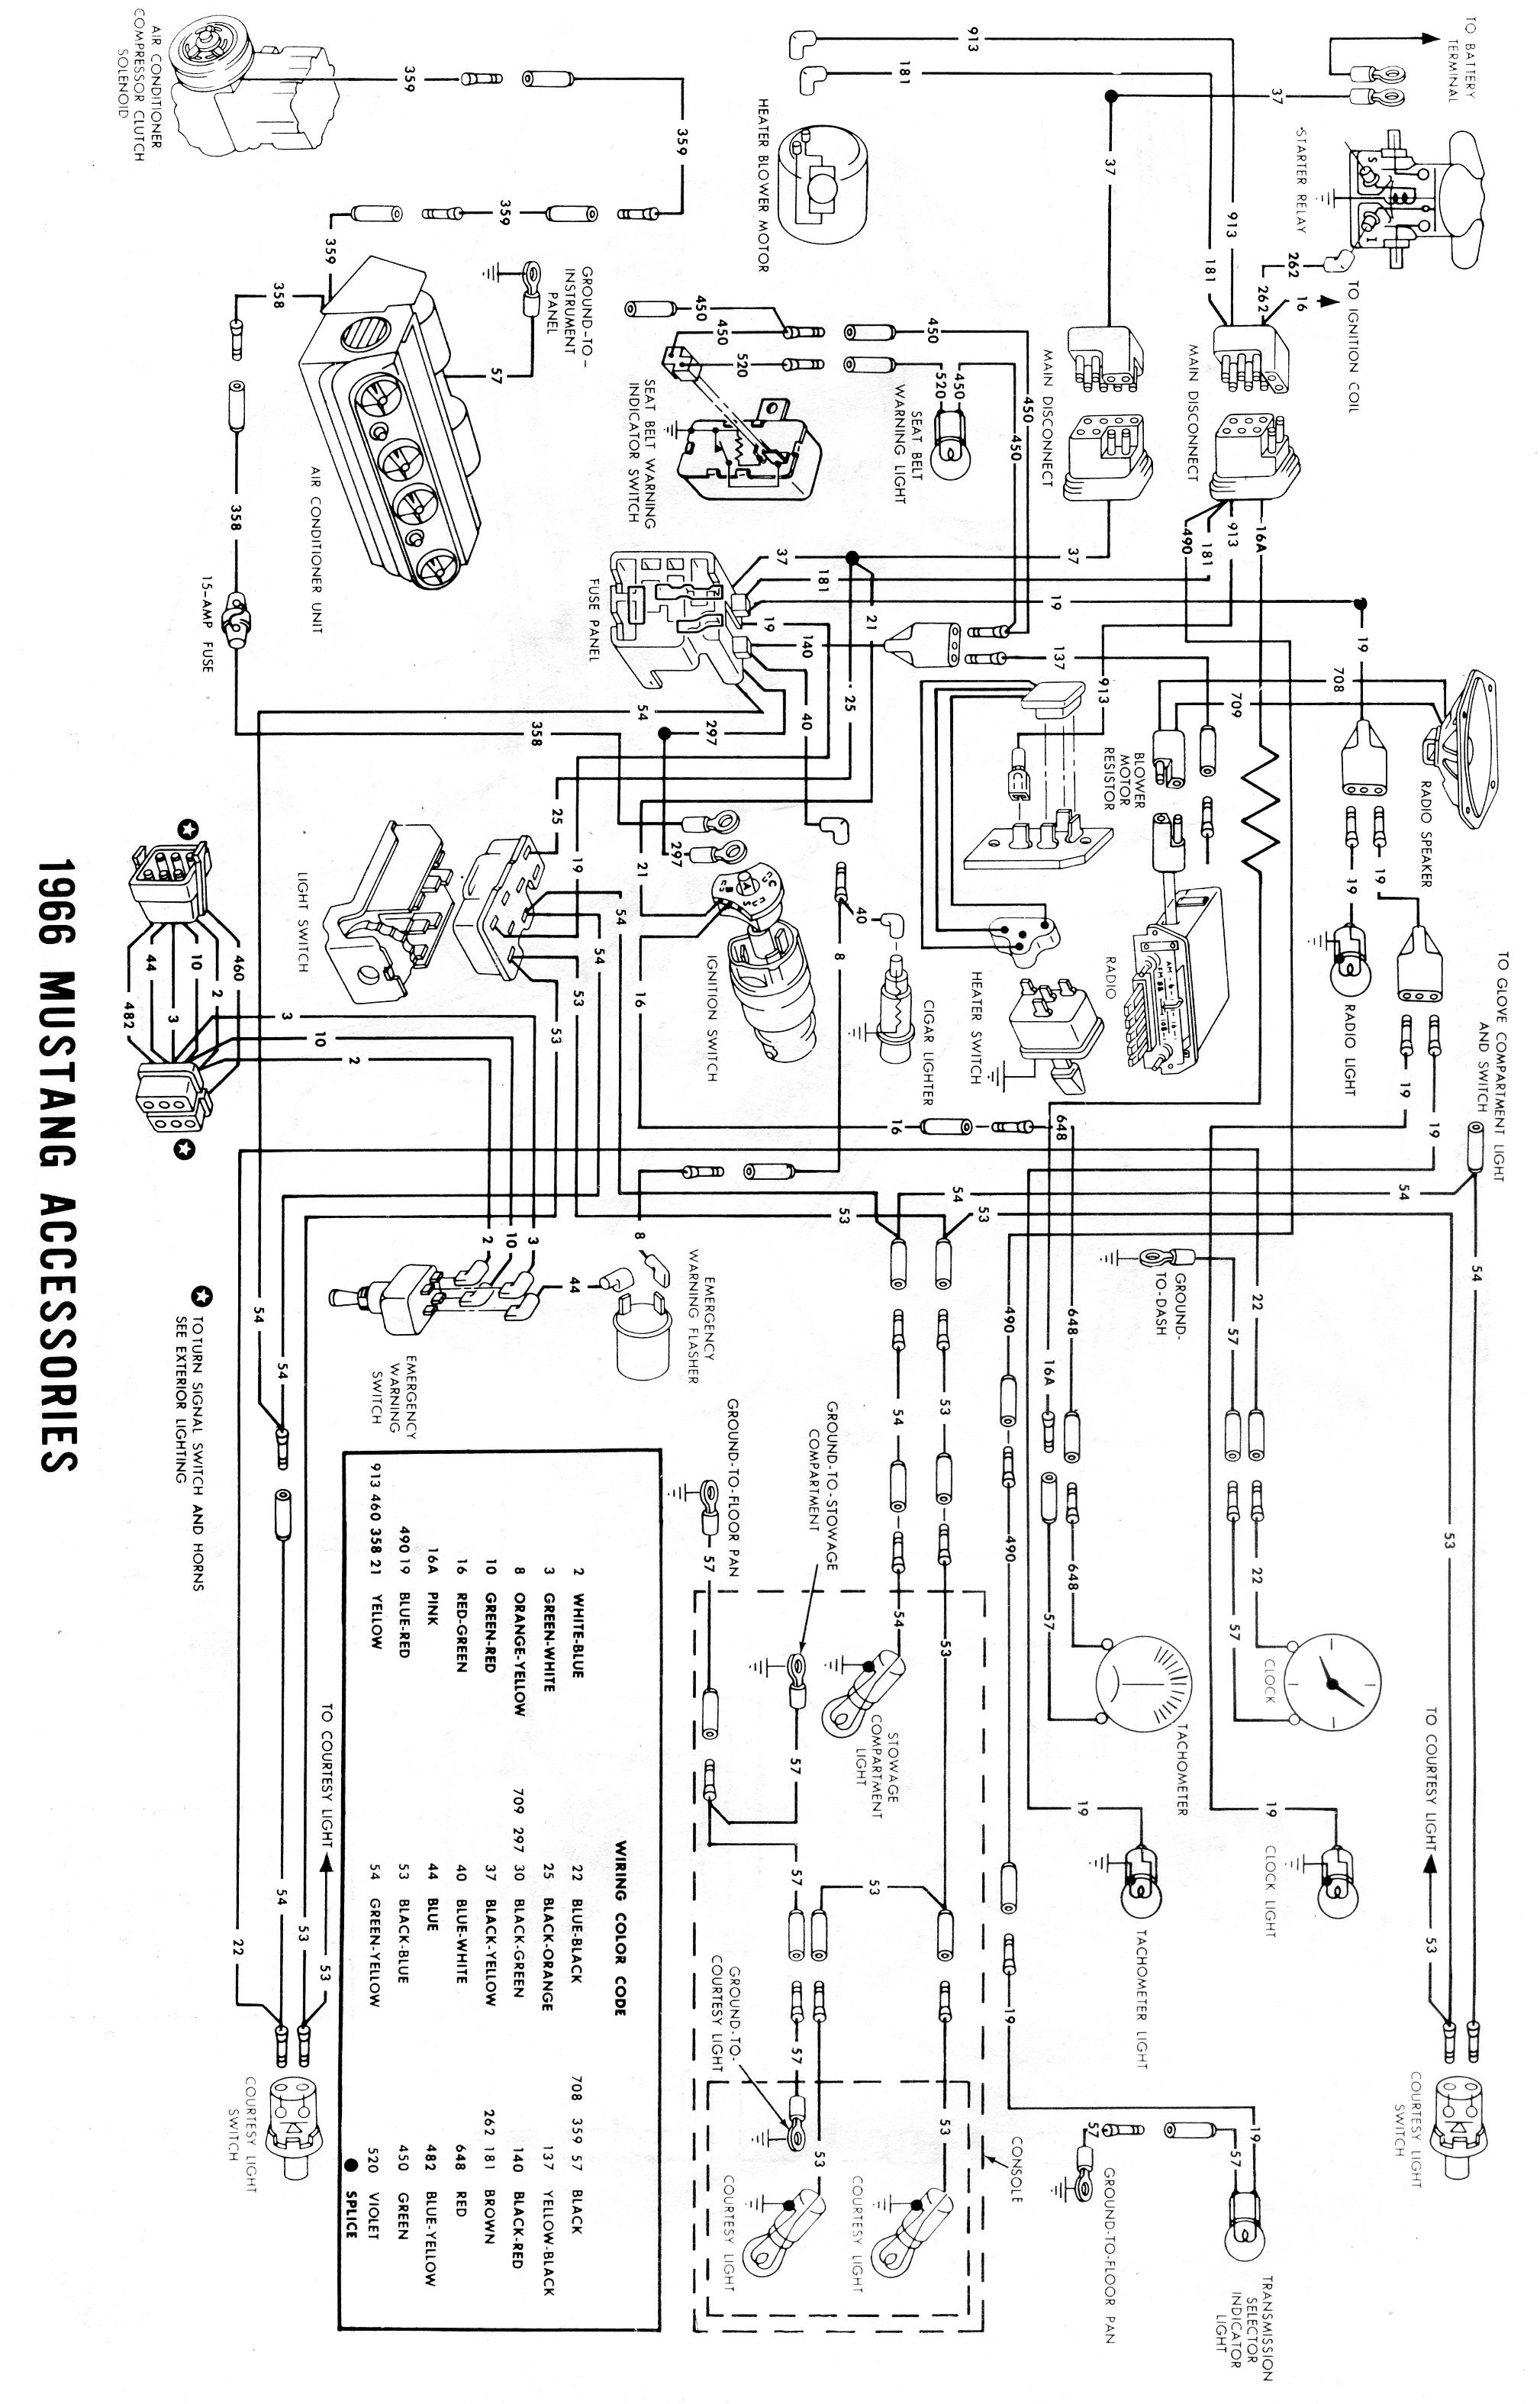 112954d1286846513 why does my instrument fuse keep blowing out mustang wiring 300dpi003 1969 mustang instrument panel diagram wiring schematic on 1969 instrument cluster wiring diagram at eliteediting.co